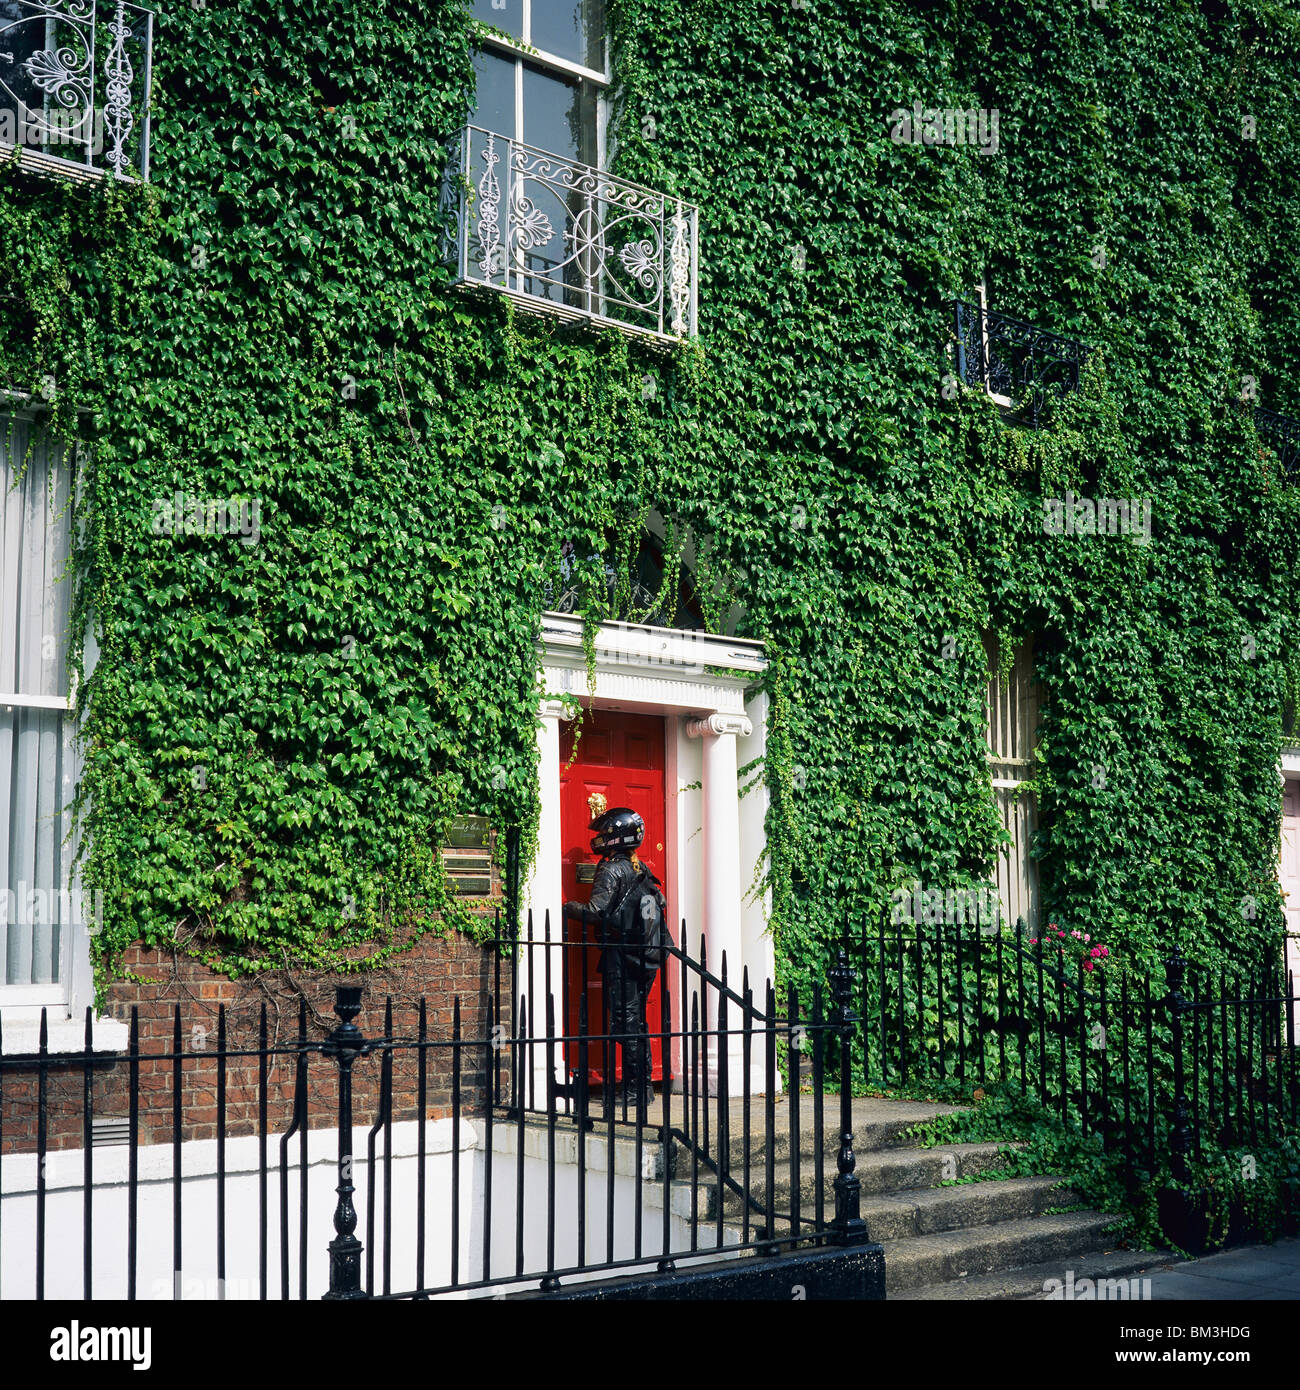 GEORGIAN IVY-COVERED HOUSE AND COURIER AT RED FRONT DOOR DUBLIN IRELAND